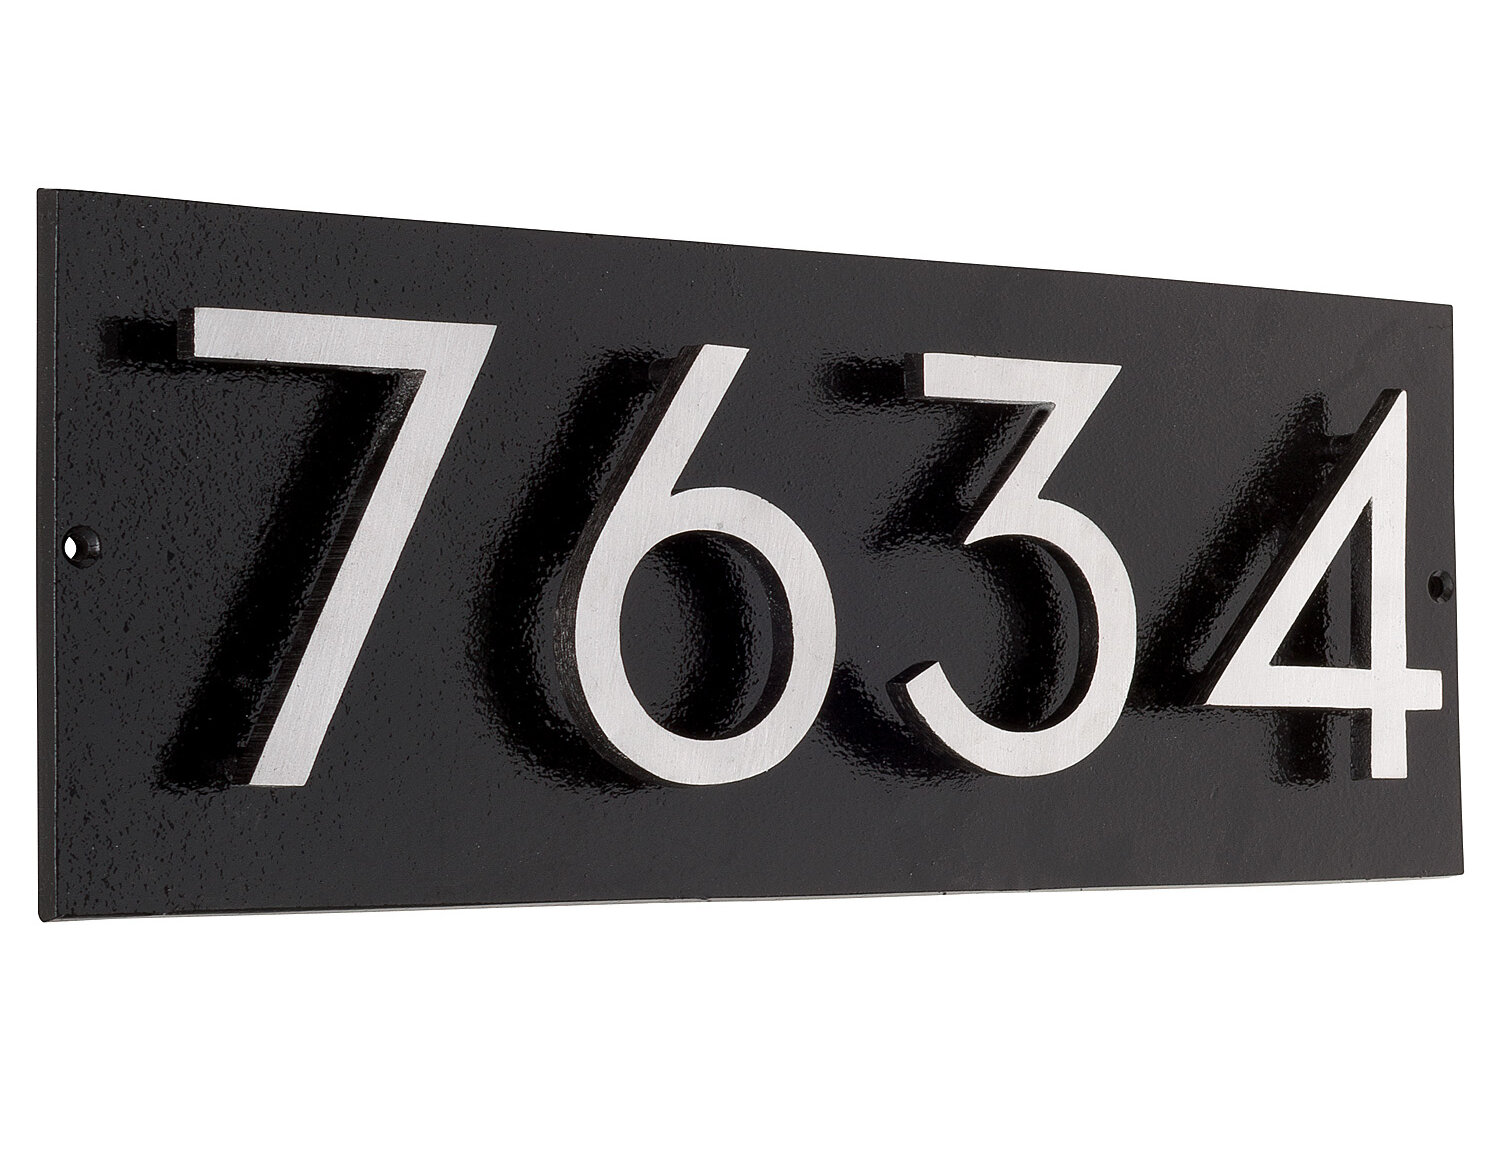 Montague Metal Products Floating 1 Line Wall Address Plaque Reviews Wayfair